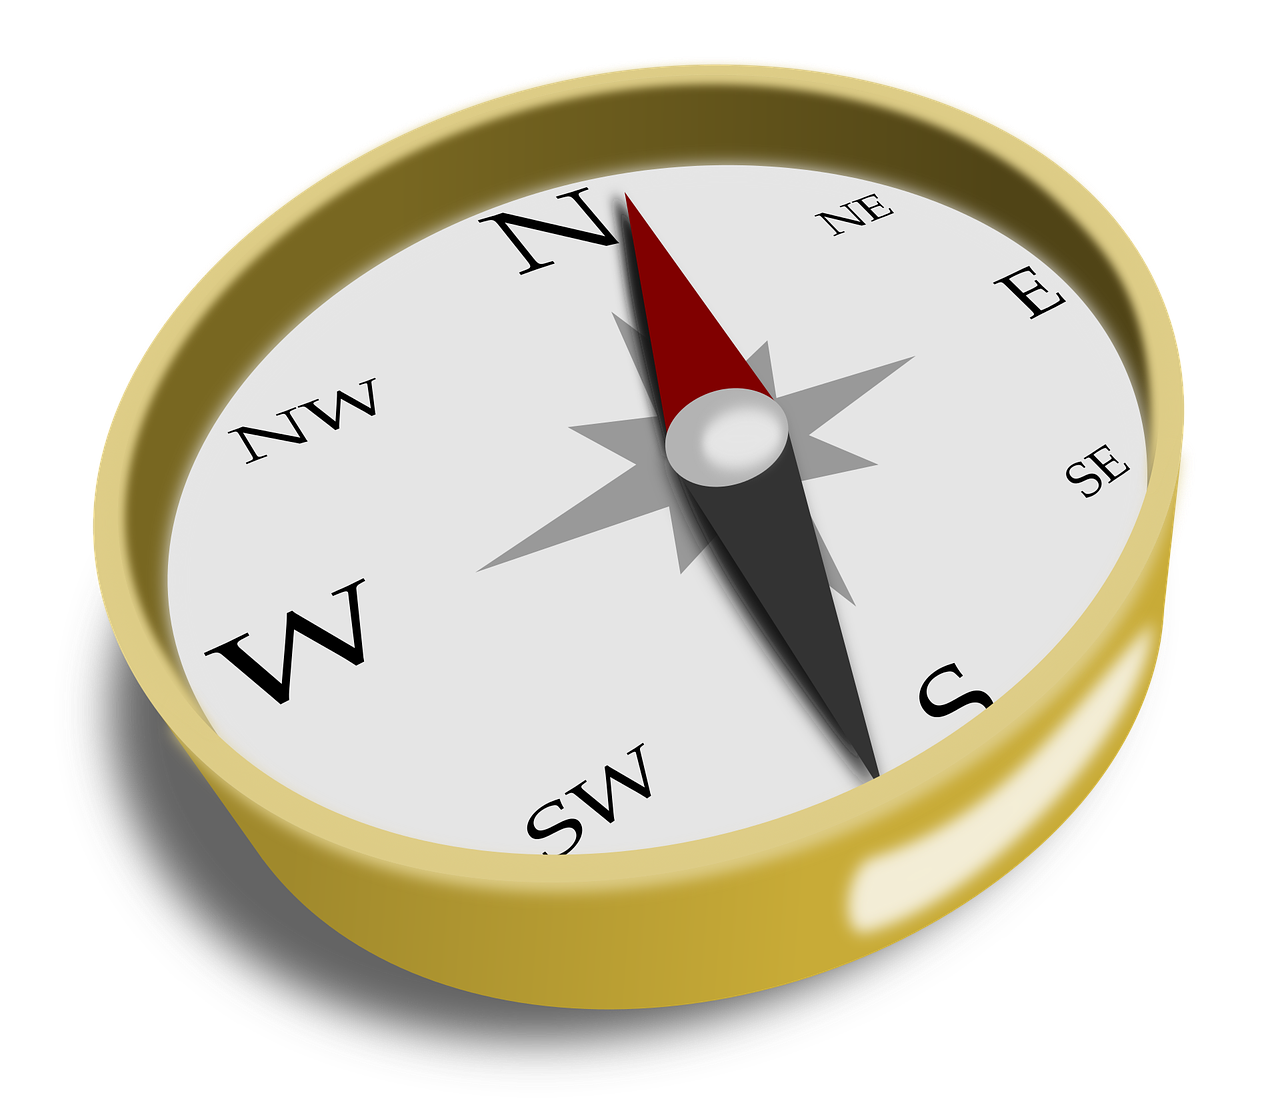 Direction navigation png image. Compass clipart south